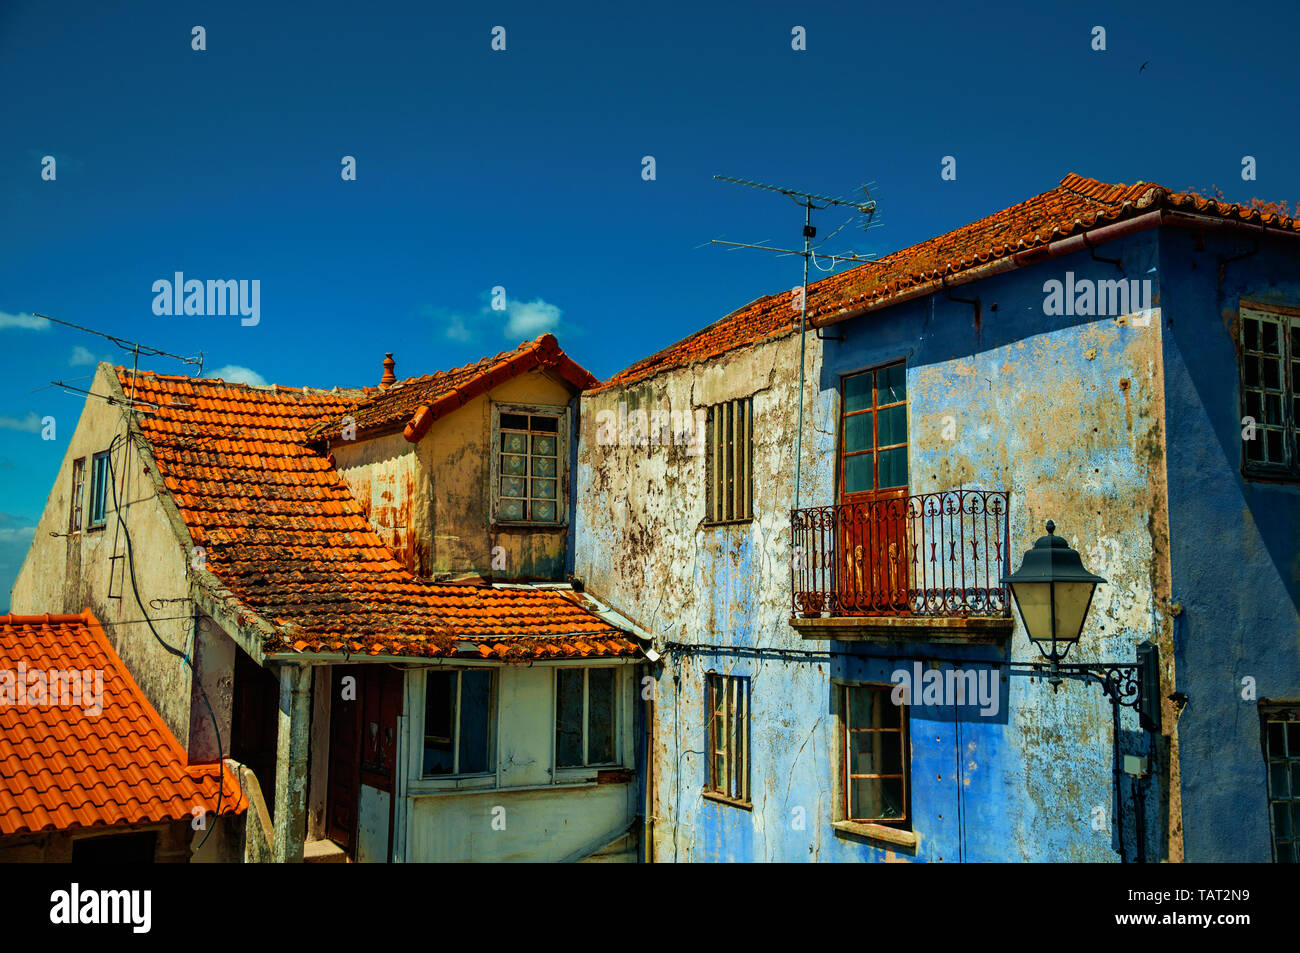 Old colorful houses with worn plaster in a sunny day at Seia. A nice village of Portugal also known for its delicious cheese. - Stock Image